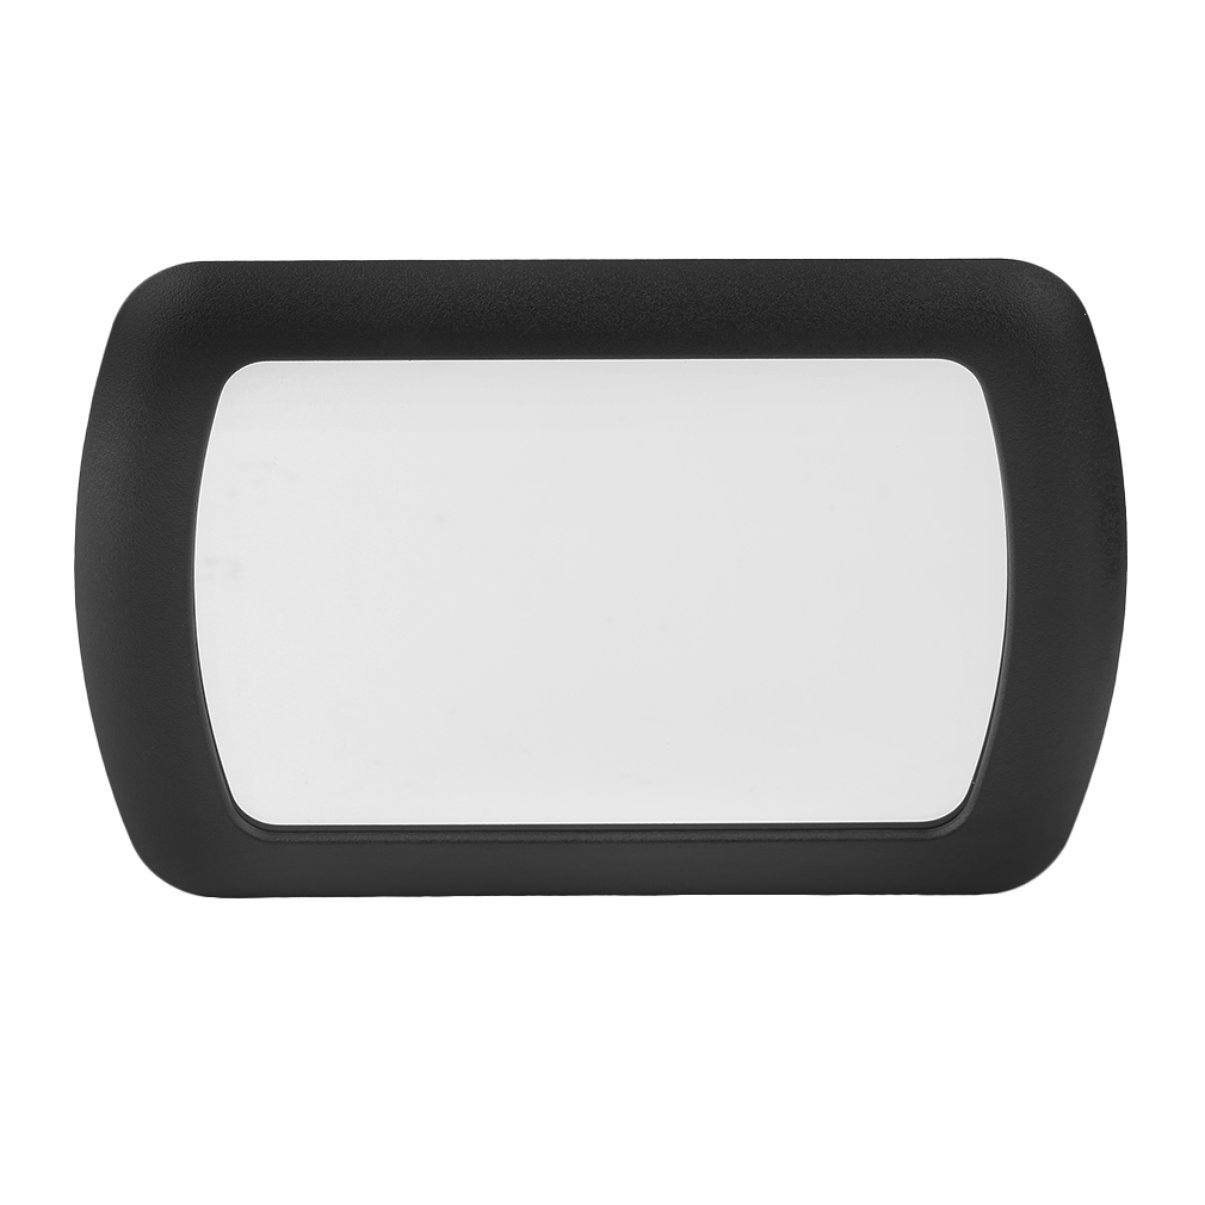 Jullyelegant Vanity Mirror Self Adhesive, Replacement Stick-On Self Adhesive Car Vehicle Sun Visor Glass Mirror